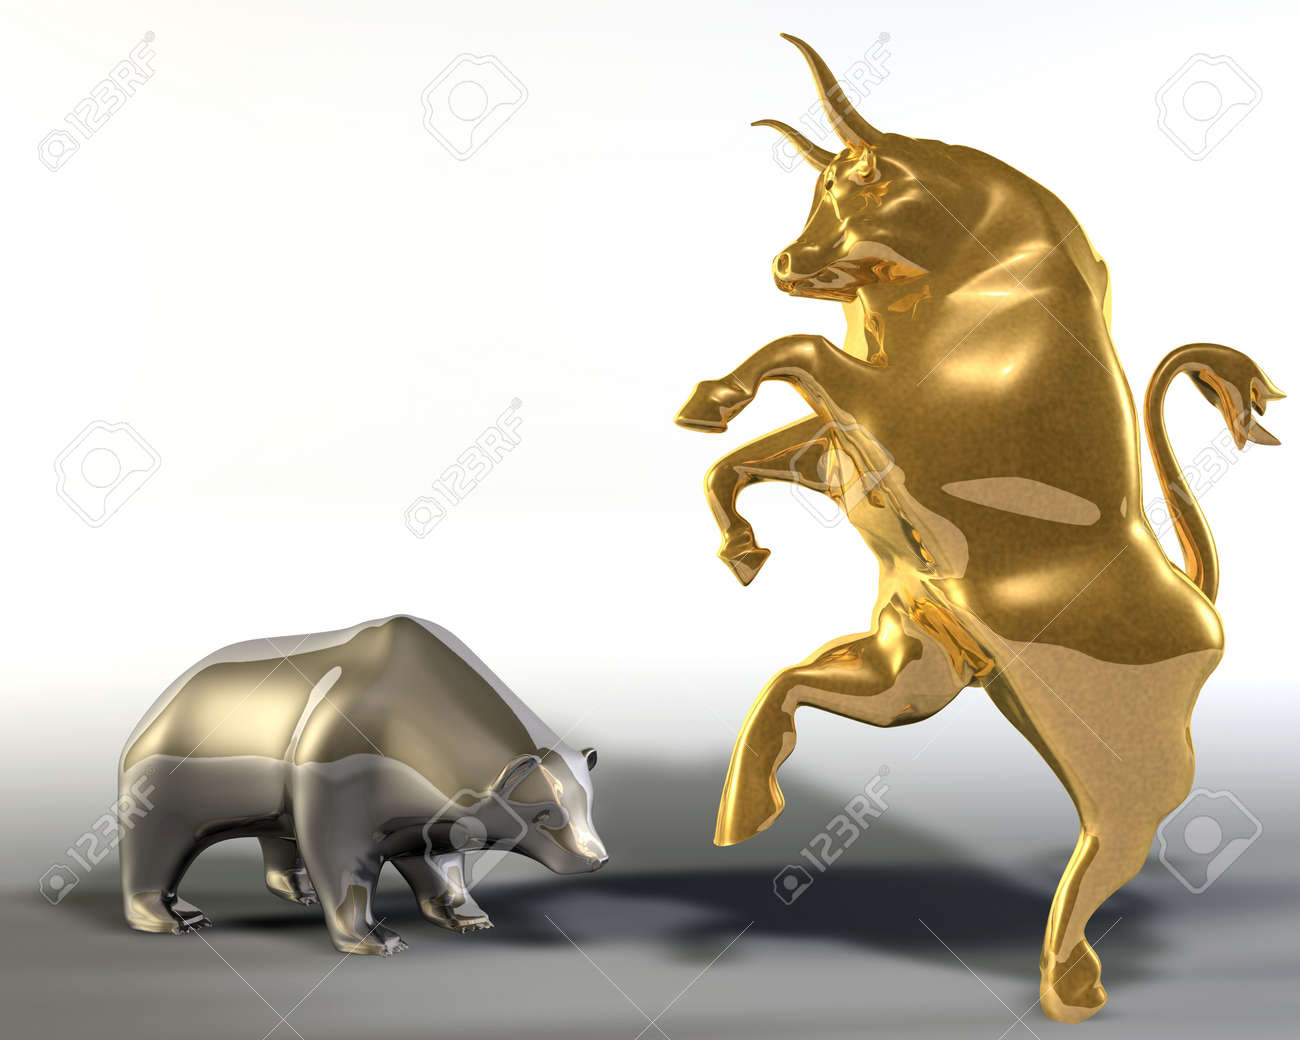 Digital 3d illustration of two statues representing a rampant golden bull and a bowed down bear Stock Illustration - 6843384